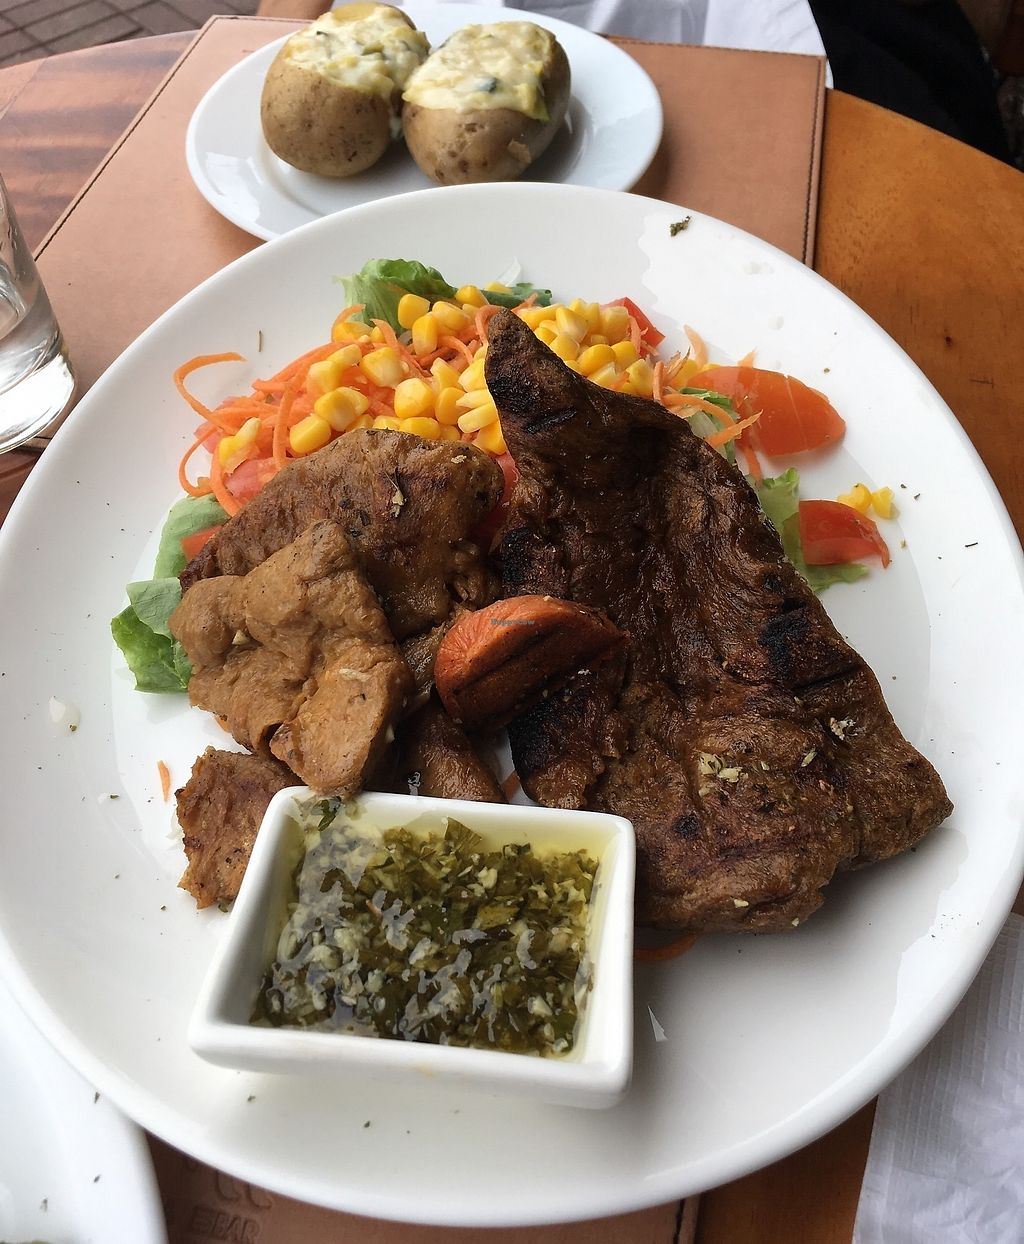 """Photo of Isla Grill  by <a href=""""/members/profile/peas-full"""">peas-full</a> <br/>mock meat <br/> January 2, 2018  - <a href='/contact/abuse/image/42261/342037'>Report</a>"""